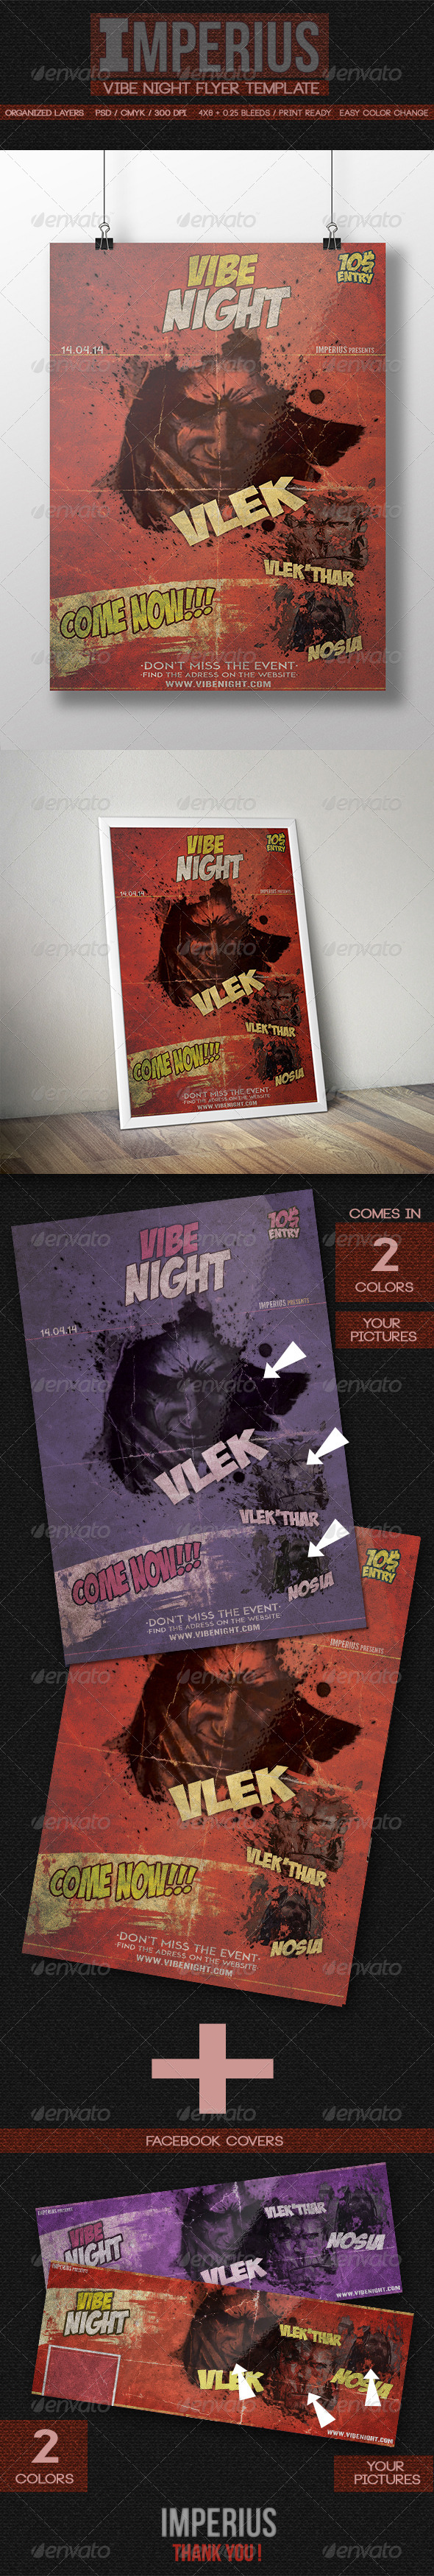 Vibe Night Flyer - Flyers Print Templates